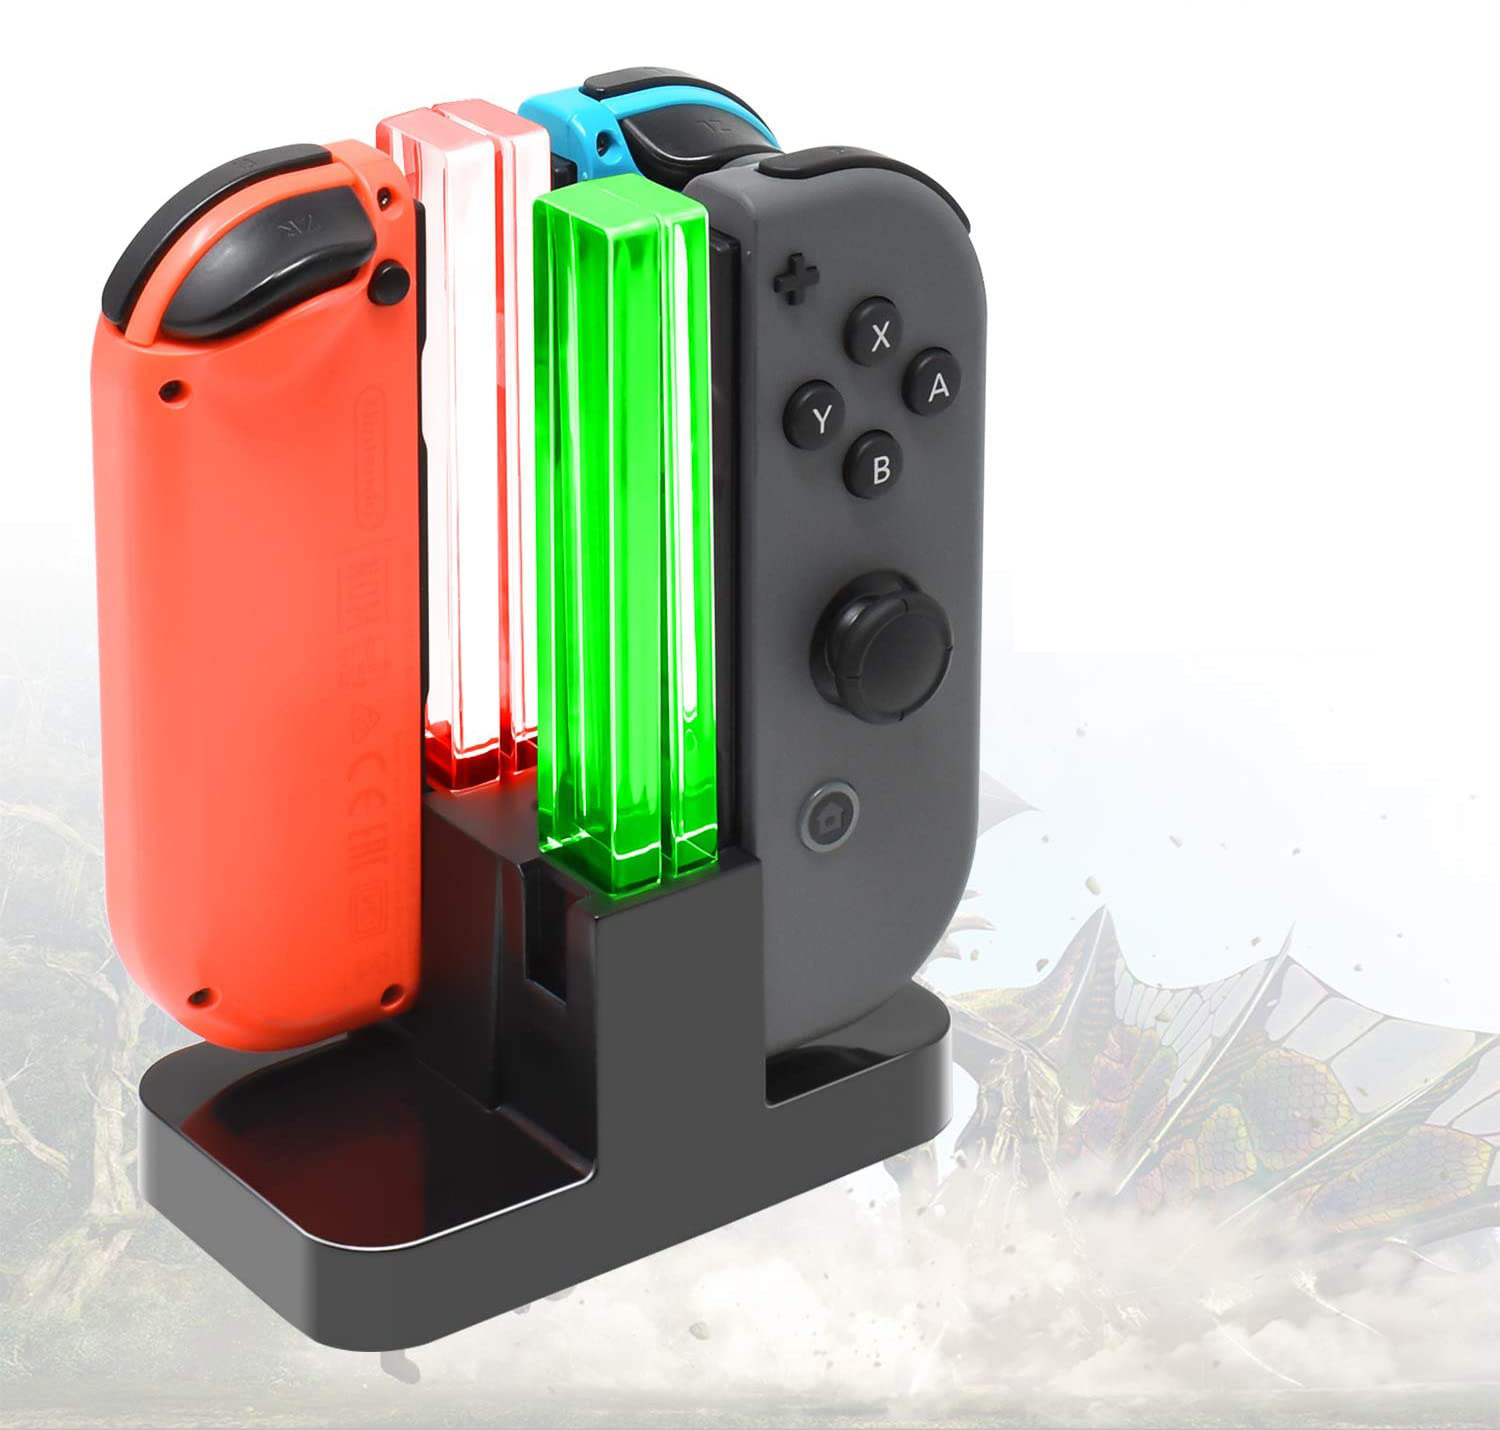 A small docking station with three Switch controllers charging on it